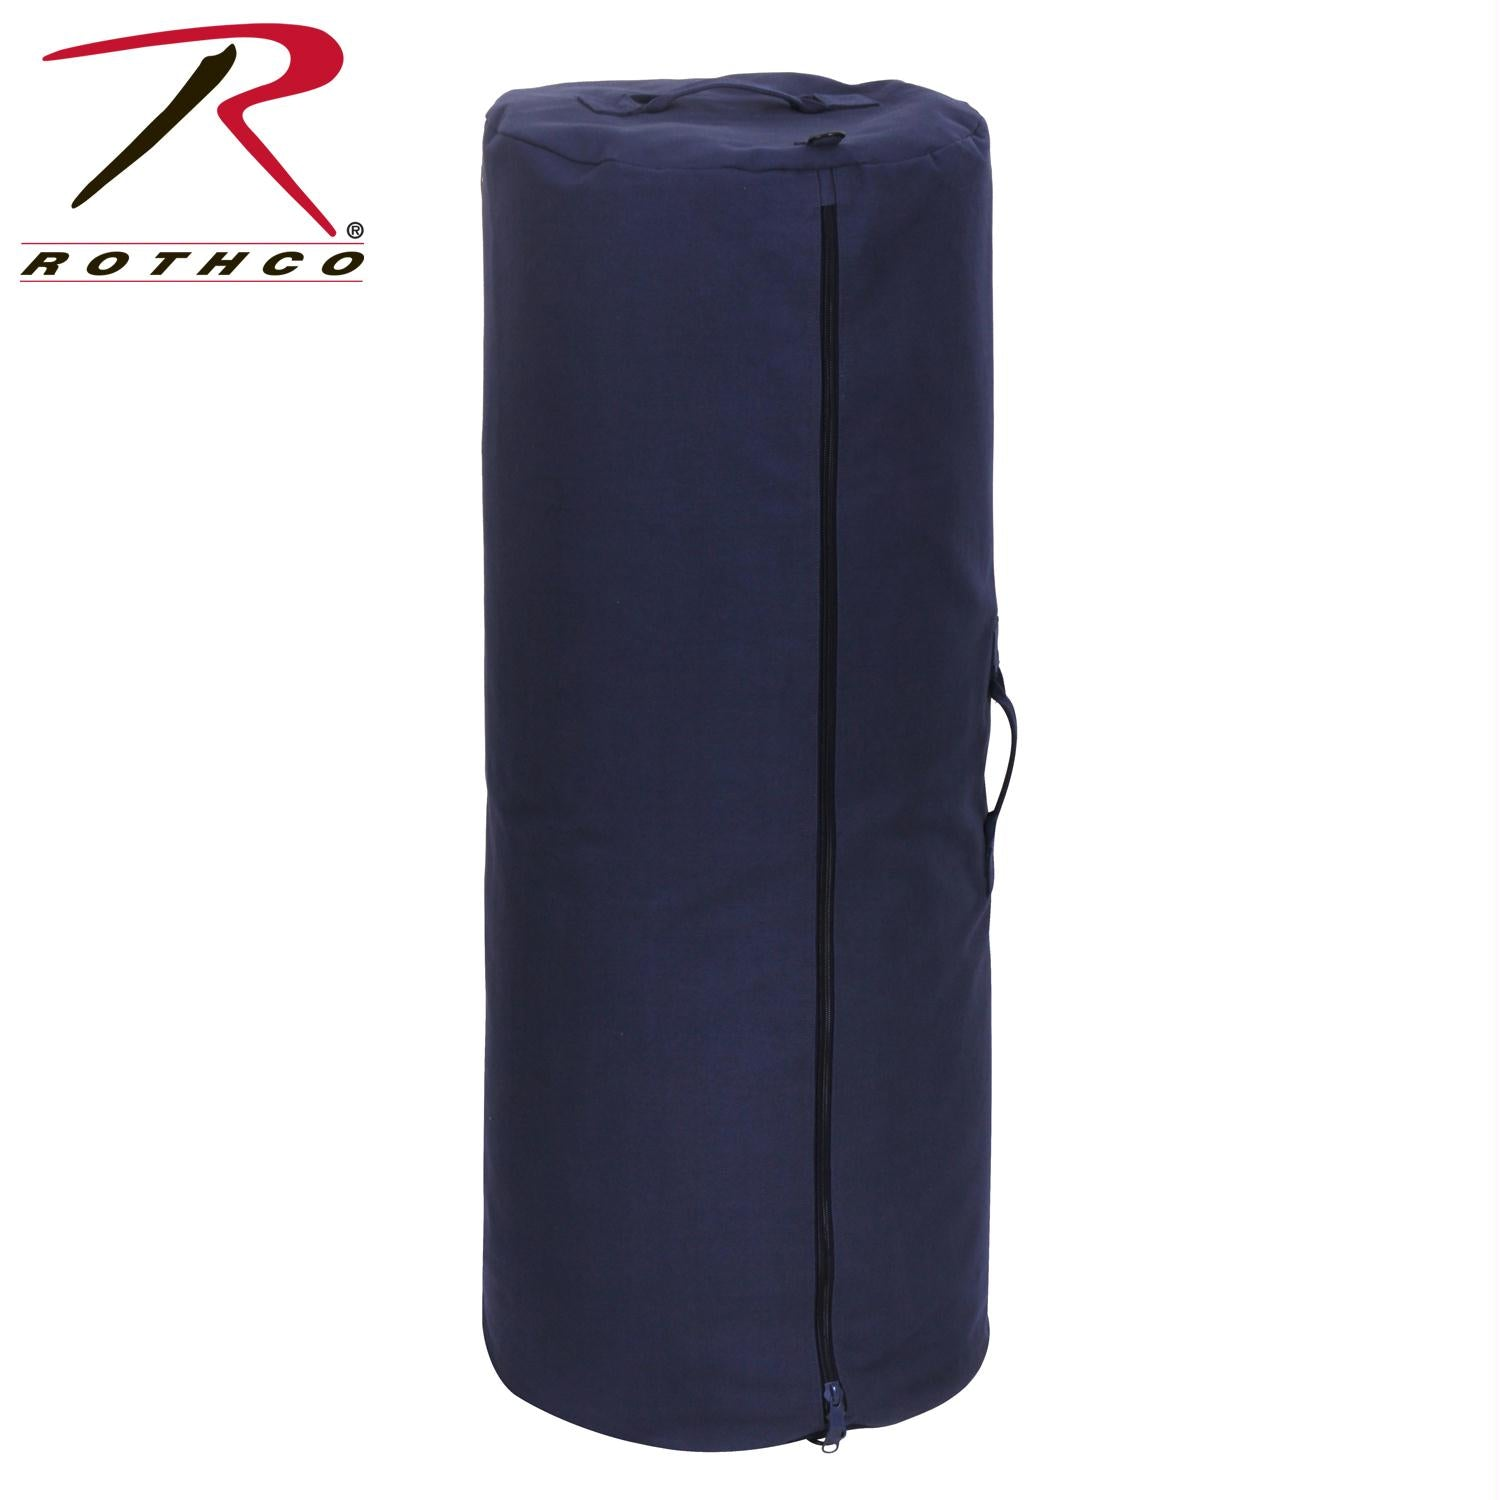 Rothco Canvas Duffle Bag w/ Side Zipper - Navy Blue / 30